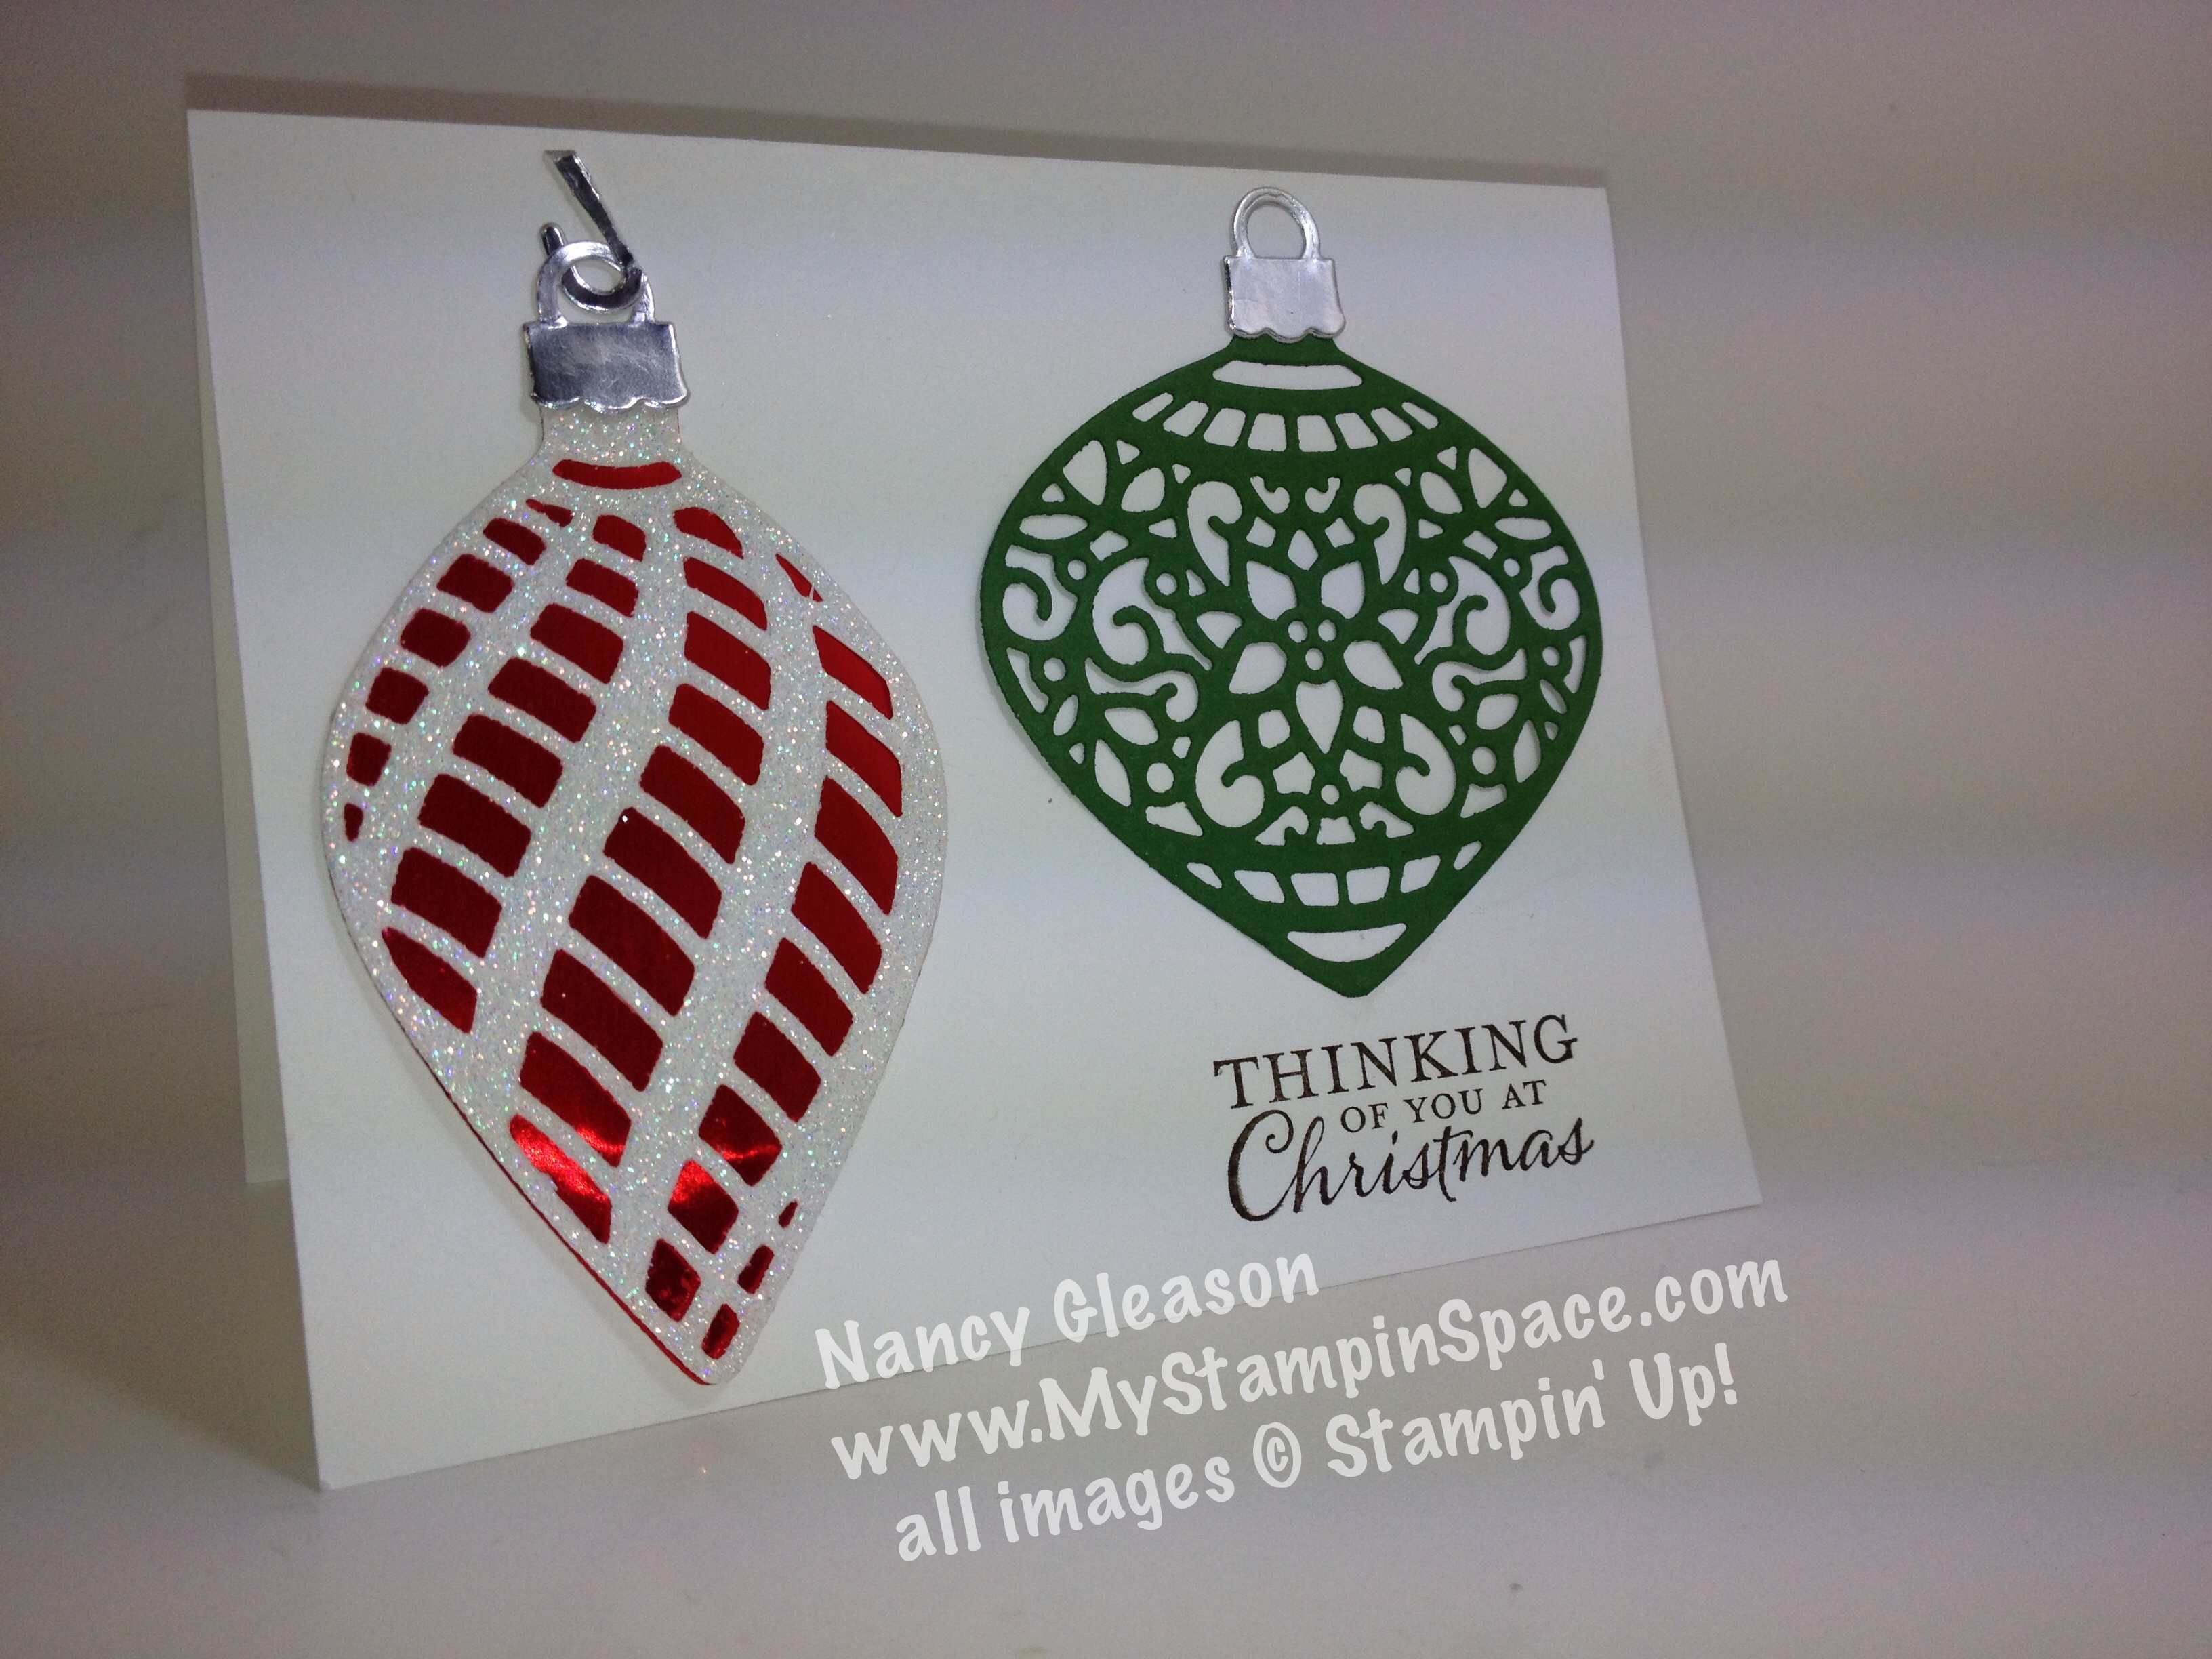 Christmas ornament catalogs - You Can View The Catalog Here Or On The Sidebar Do You Want A Paper Catalog To Have In Your Hands